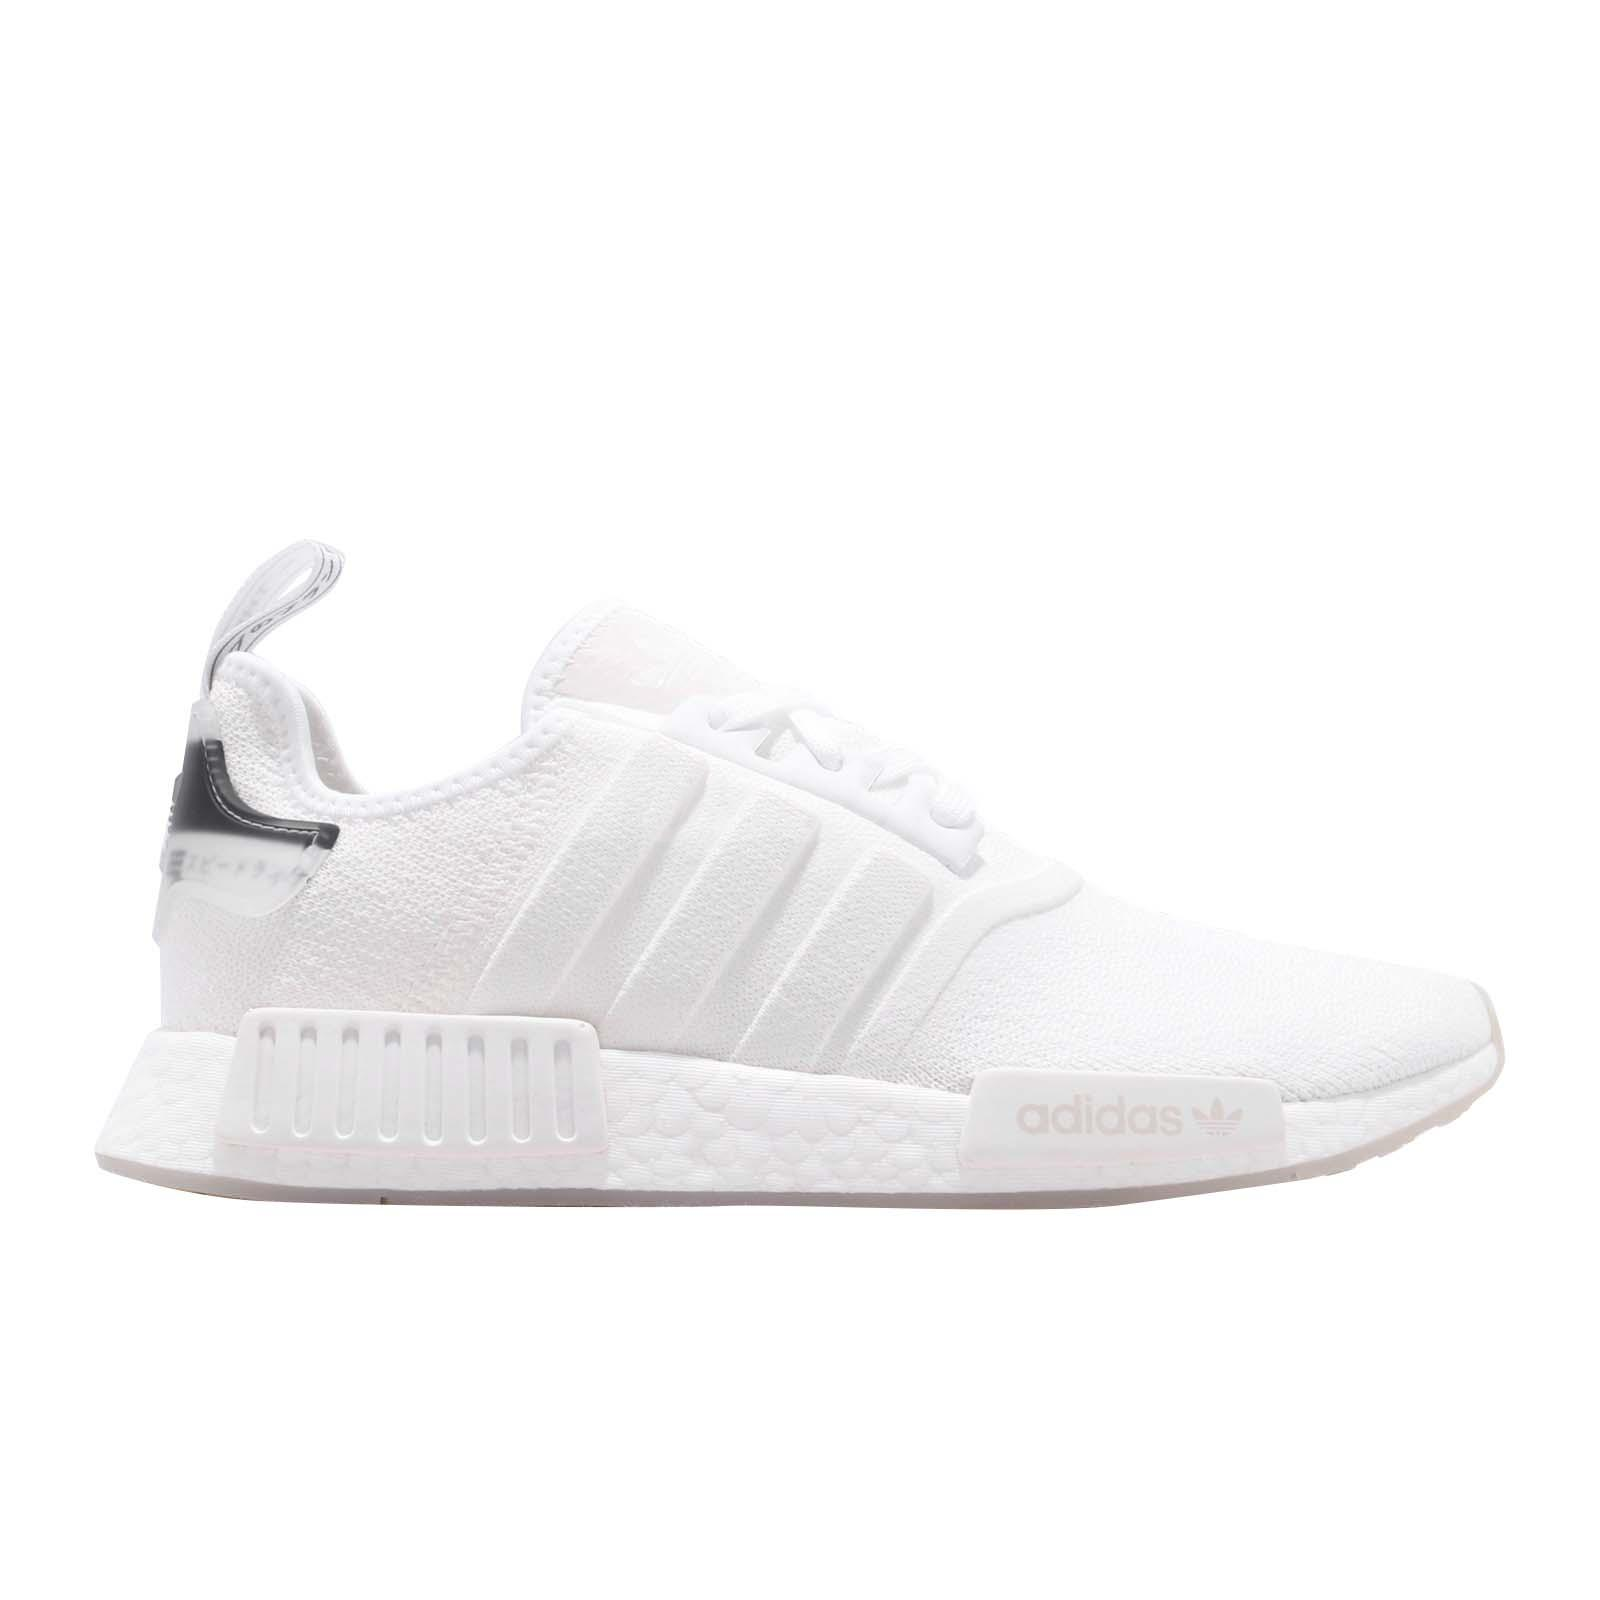 aa68fcd4d65c6 adidas Originals NMD R1 Boost White Black Men Running Shoes Sneakers ...